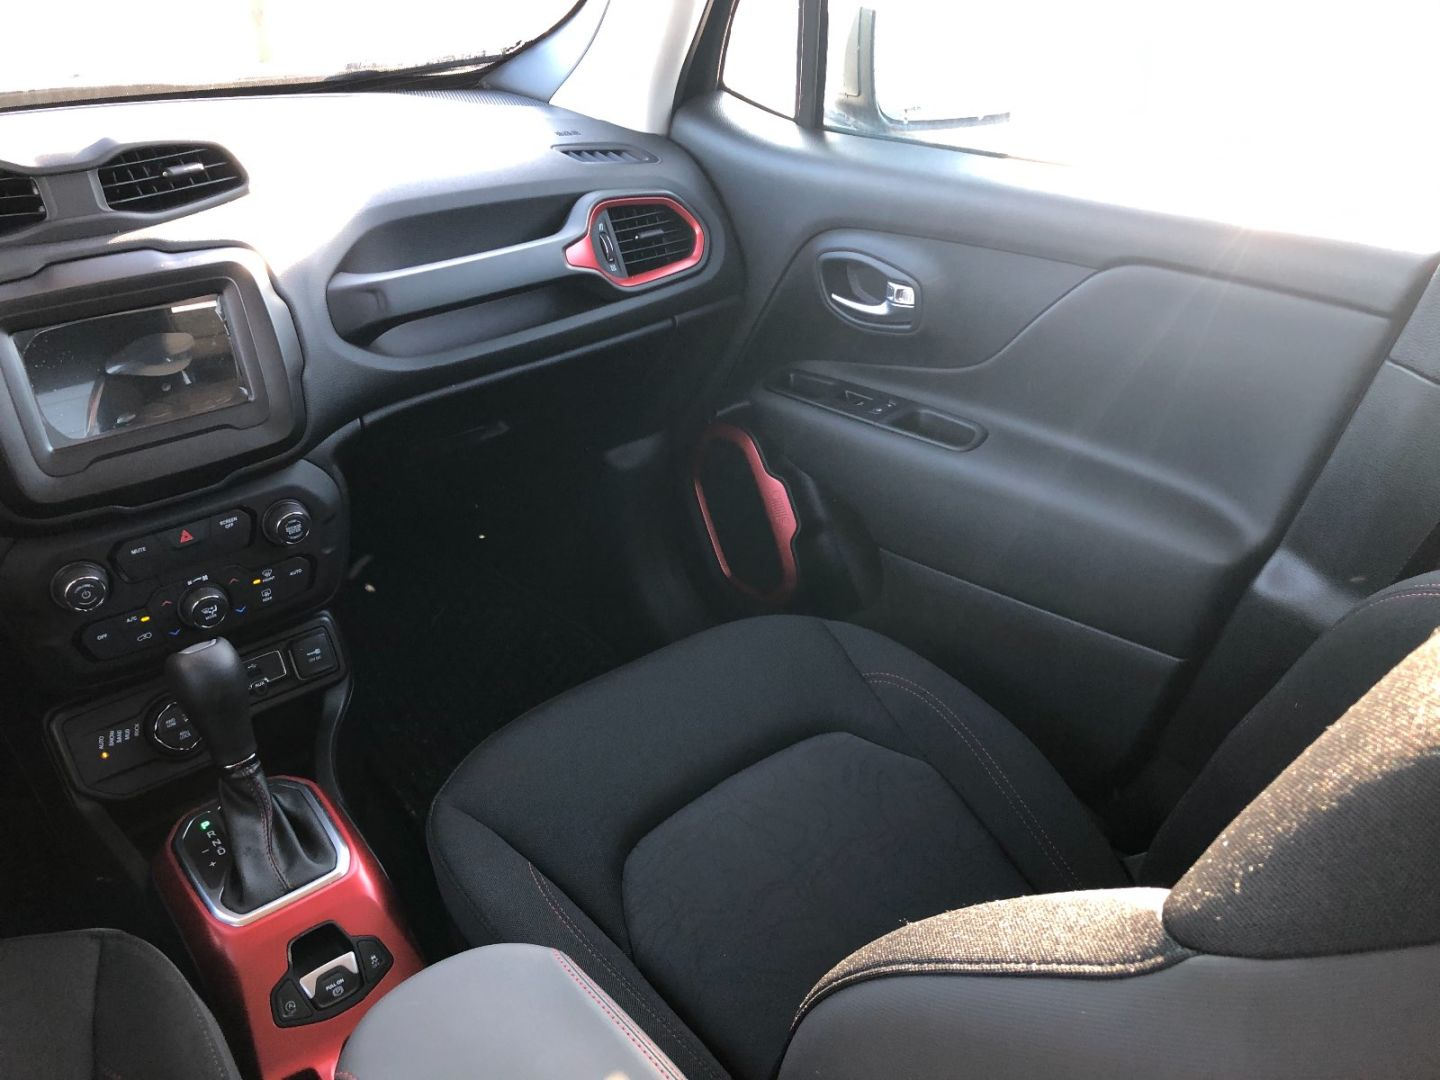 2019 Jeep Renegade Trailhawk for sale in Yellowknife, Northwest Territories